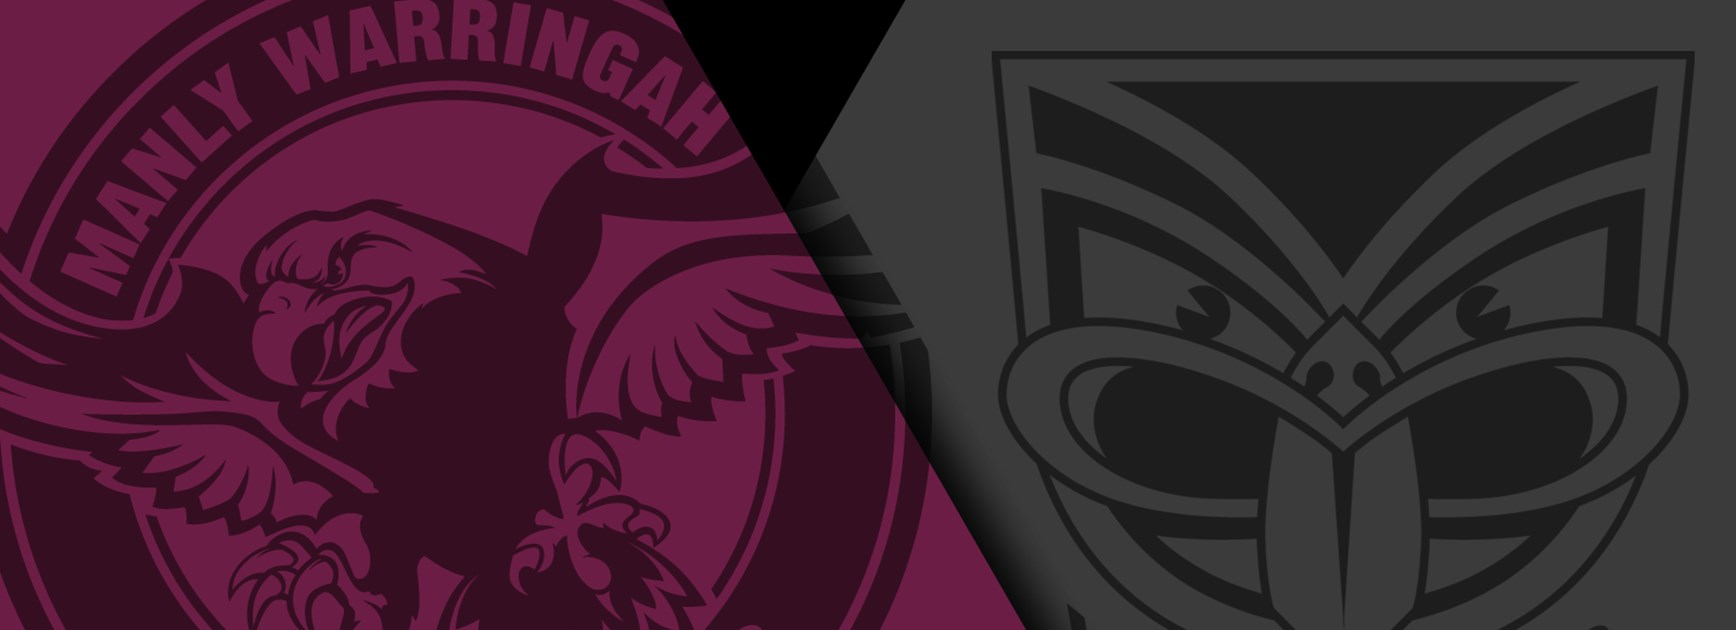 Will the Sea Eagles beat the Warriors on Saturday?